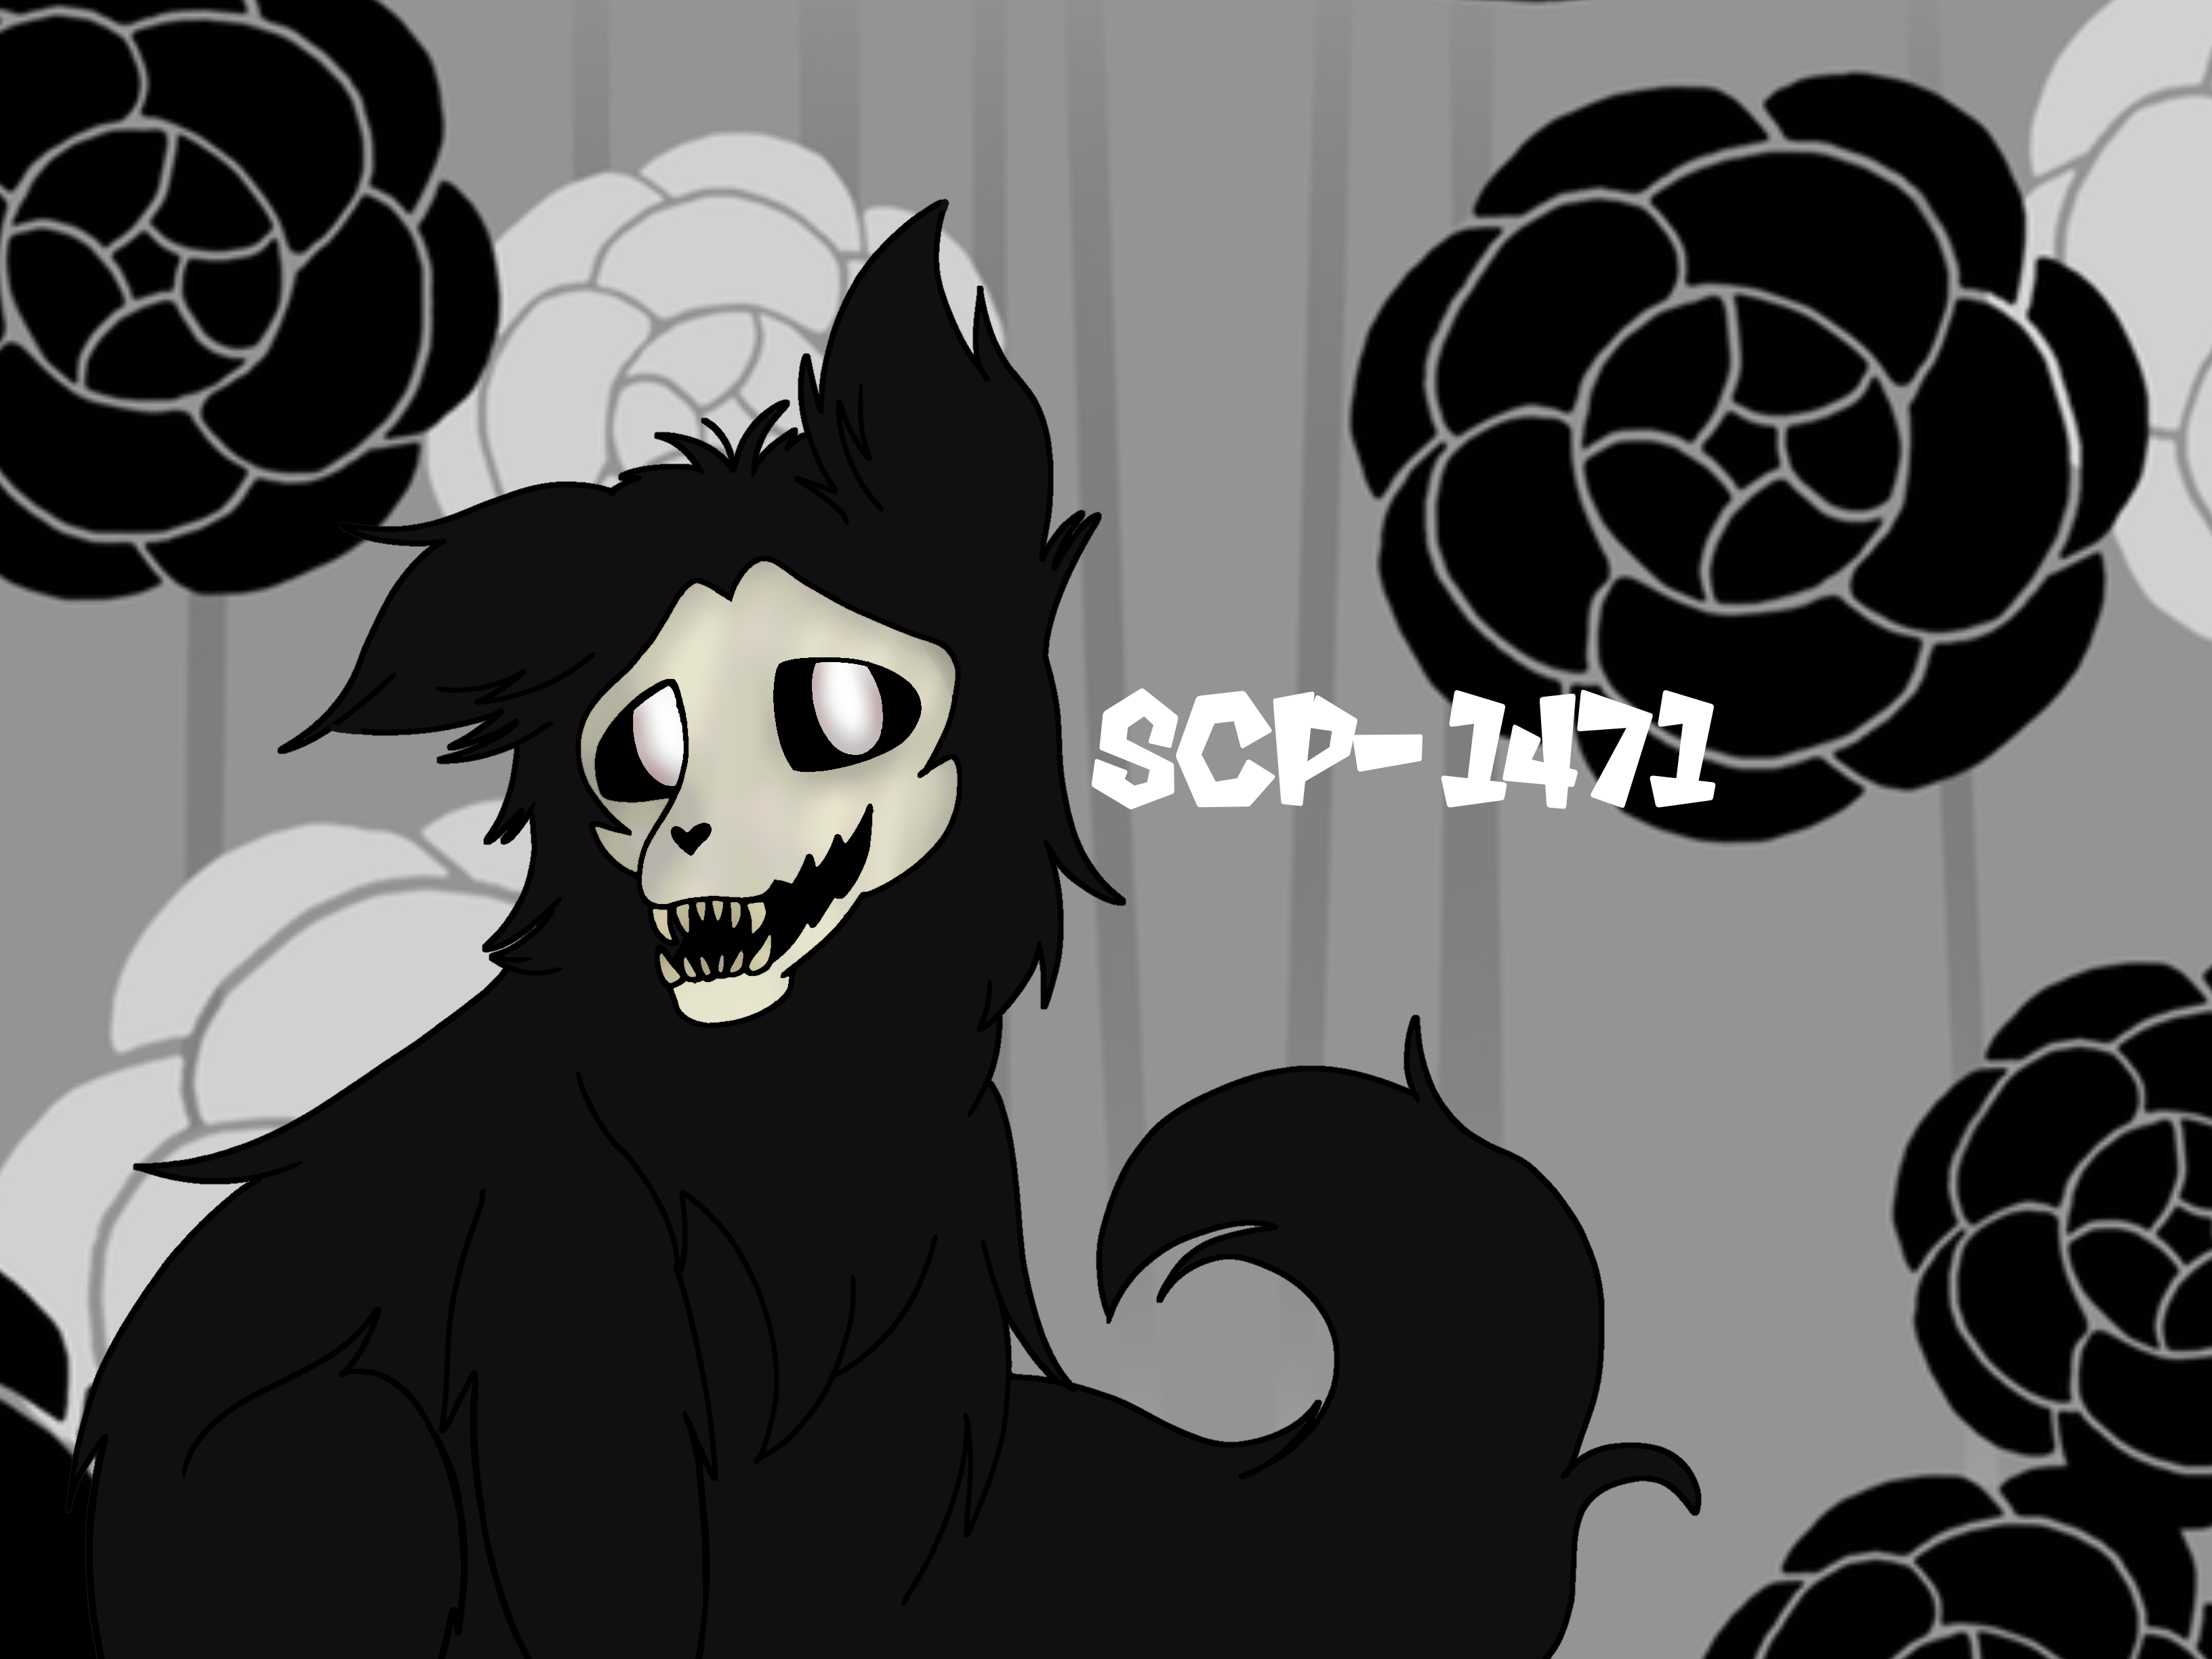 Scp- 1471